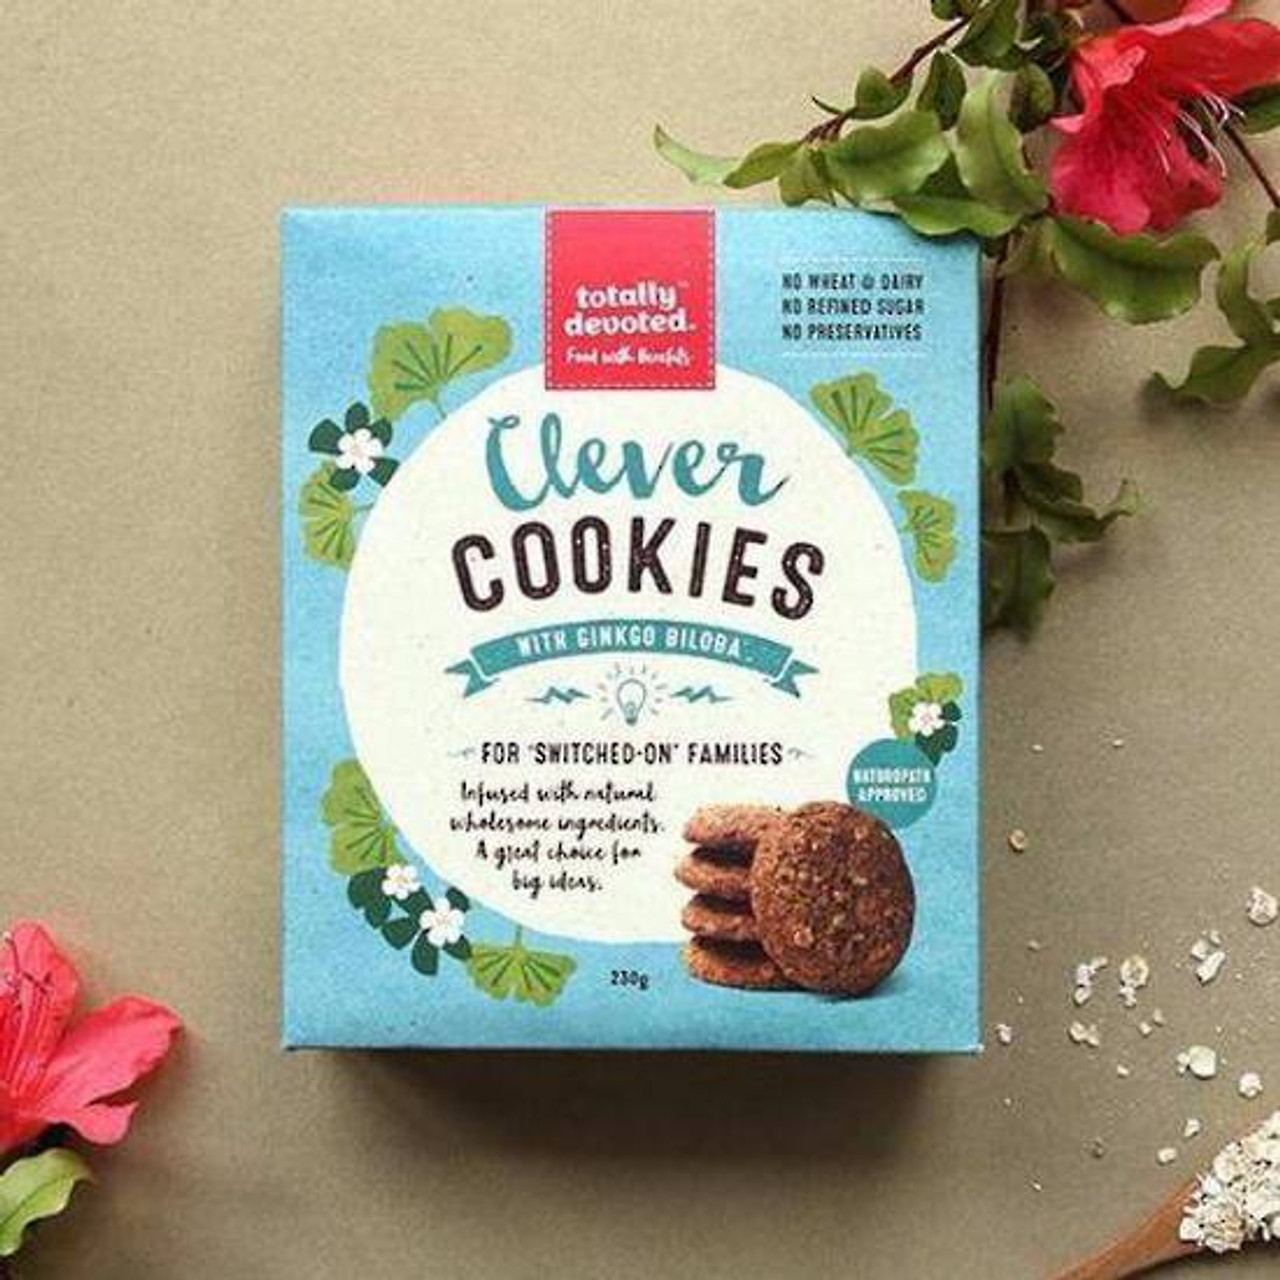 Clever Cookies with Ginkgo Biloba (Wheat and dairy free)